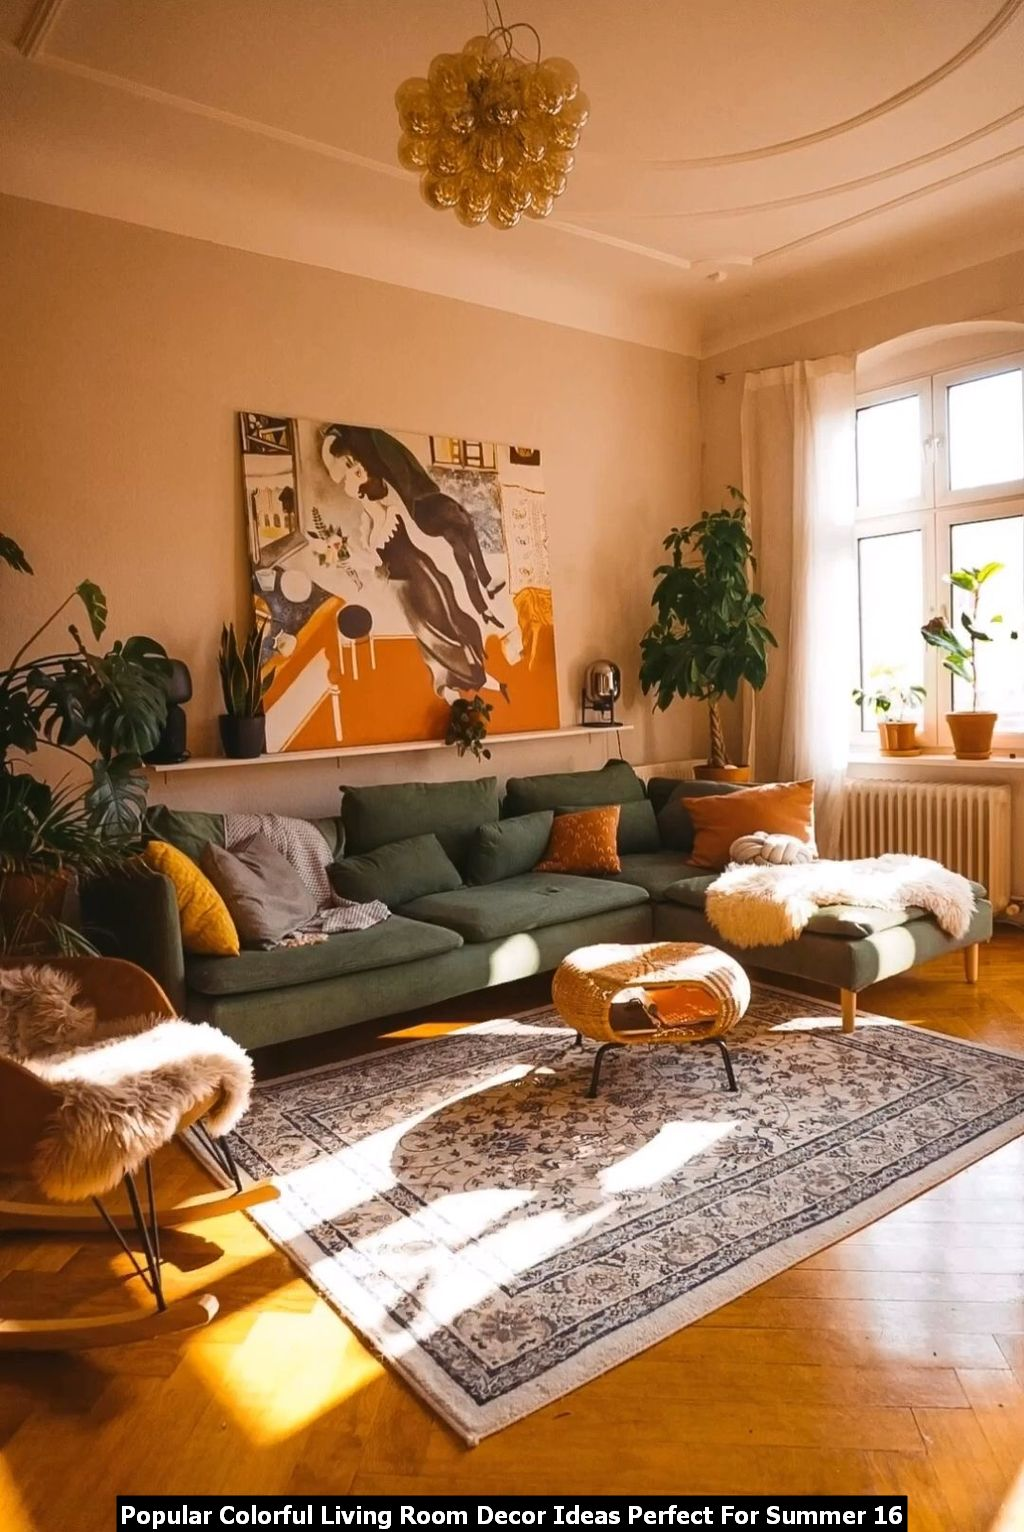 Popular Colorful Living Room Decor Ideas Perfect For Summer 16